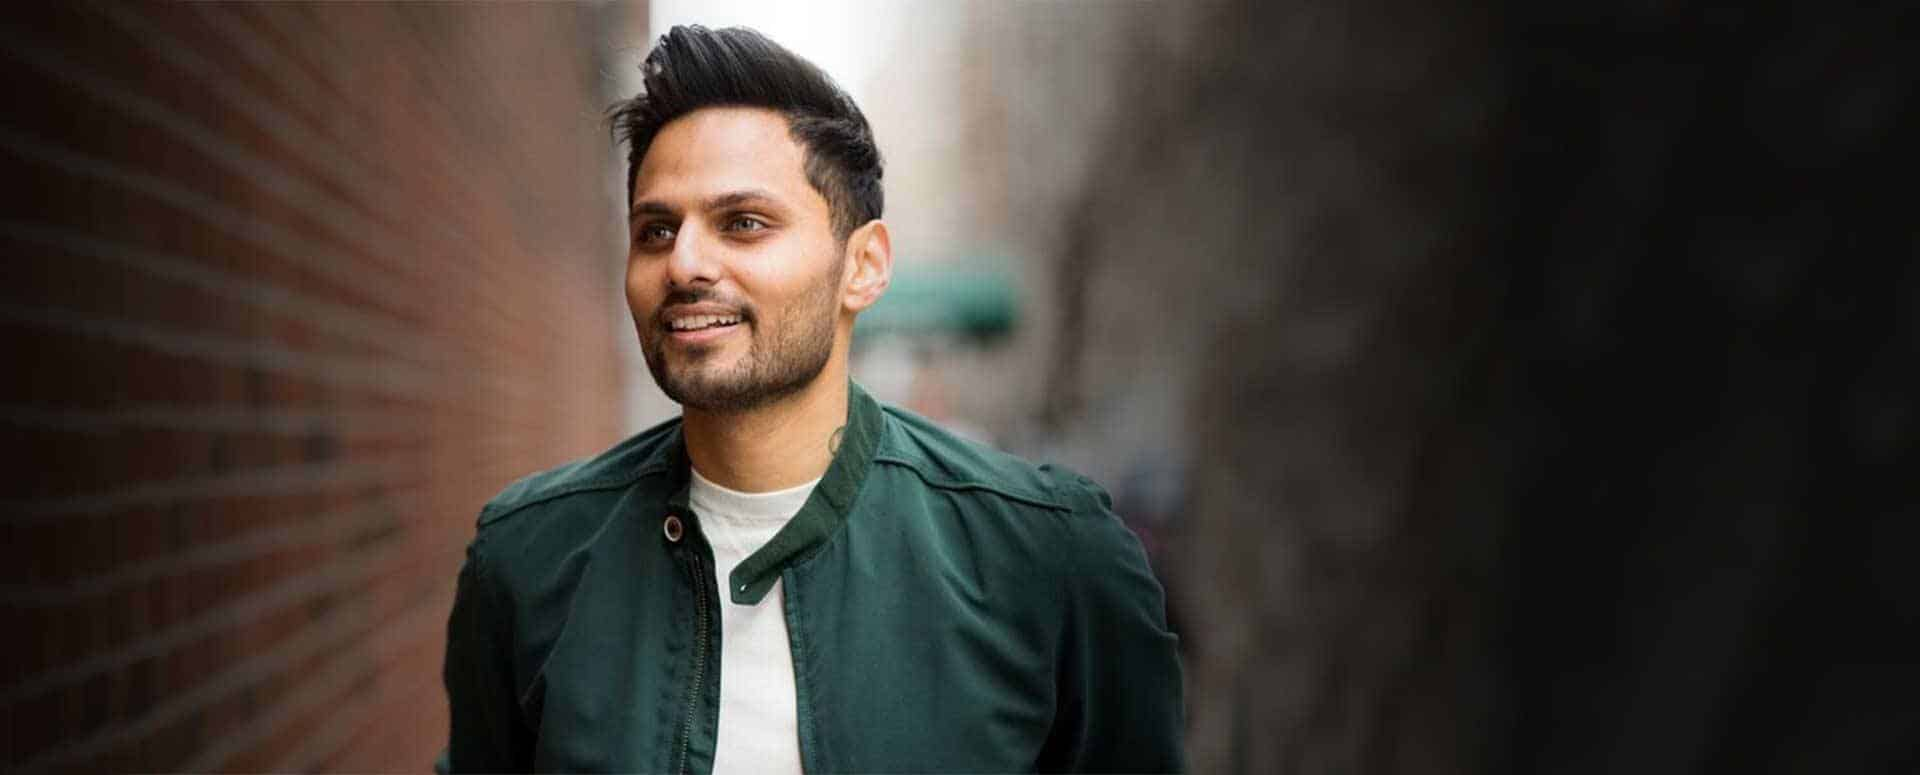 Jay Shetty British Vlogger, Motivational Speaker